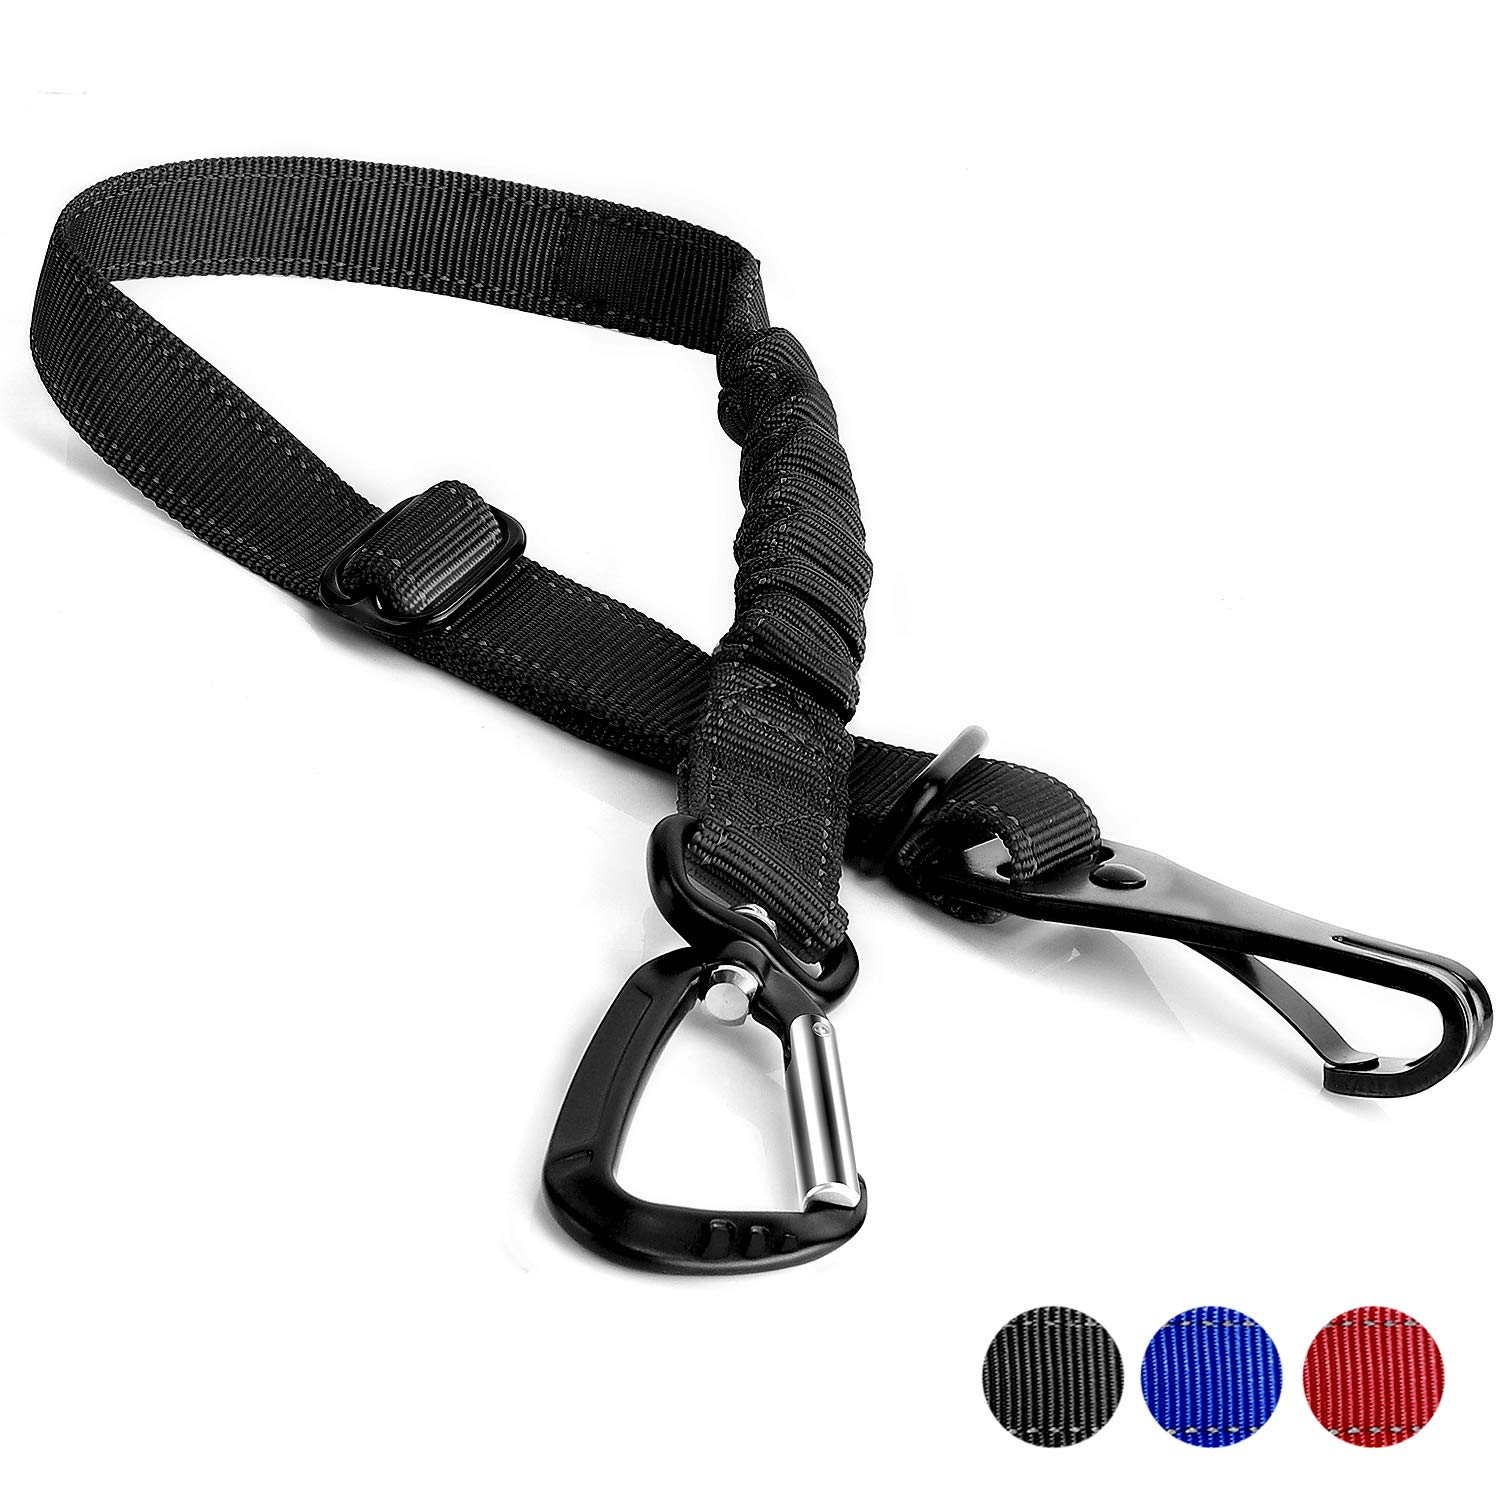 Toozey Dog Seat Belt, Adjustable Dog Car Seatbelt with Latch Bar Attachment and Heavy Duty Carabiner, Elastic Safety Belt Tether for Dog Harness, Pet Seat Belts for Small Medium Large Dogs